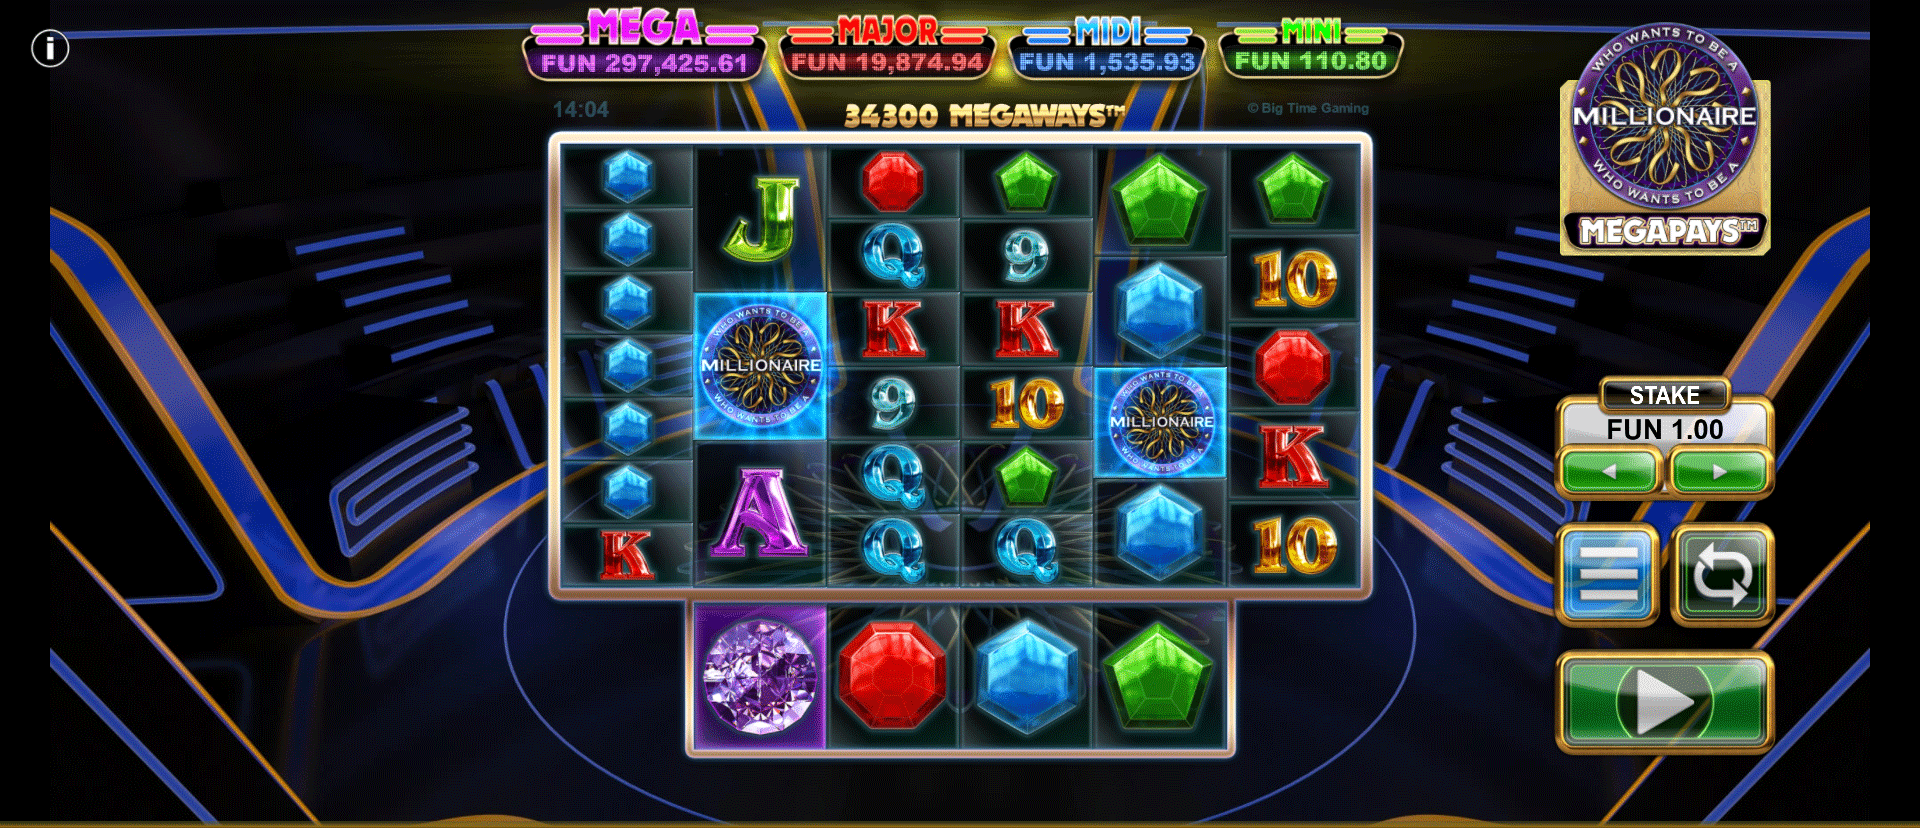 Slot Who Wants To Be A Millionaire Megapays